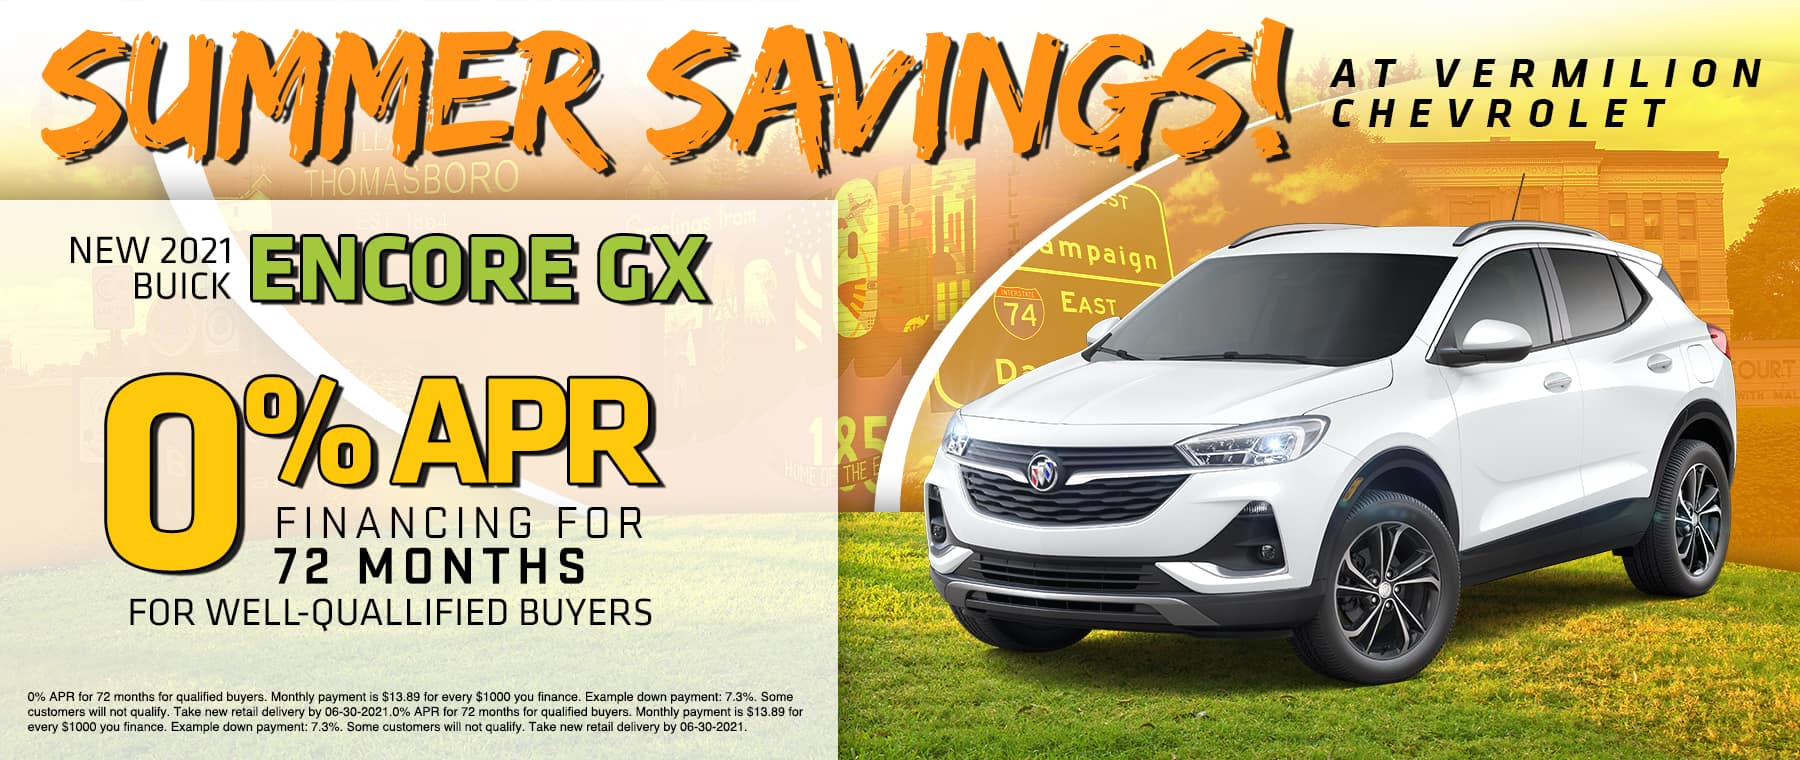 2021 BUICK ENCORE GX 0% APR FOR 72 MONTHS FOR WELL-QUALIFIED BUYERS